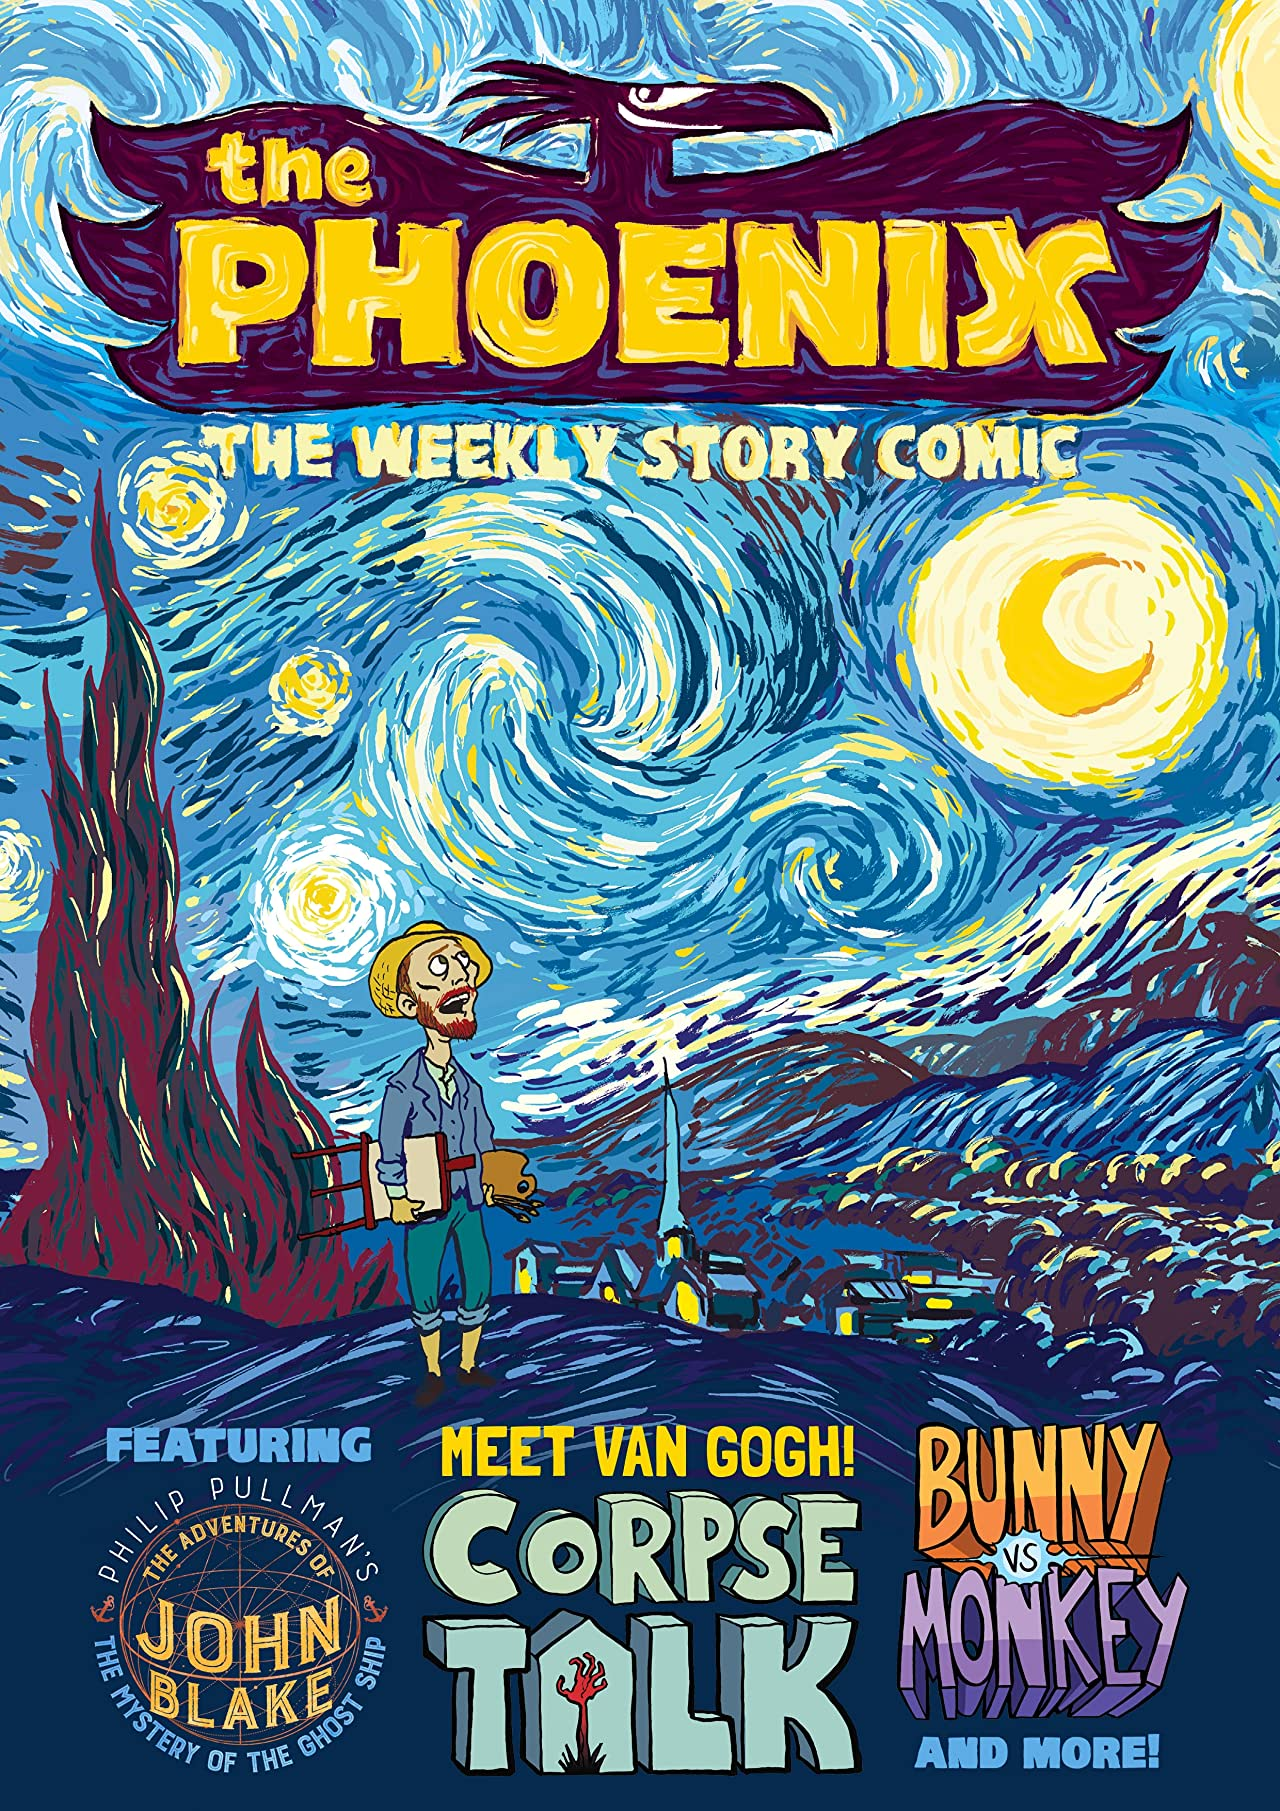 The Phoenix #254: The Weekly Story Comic